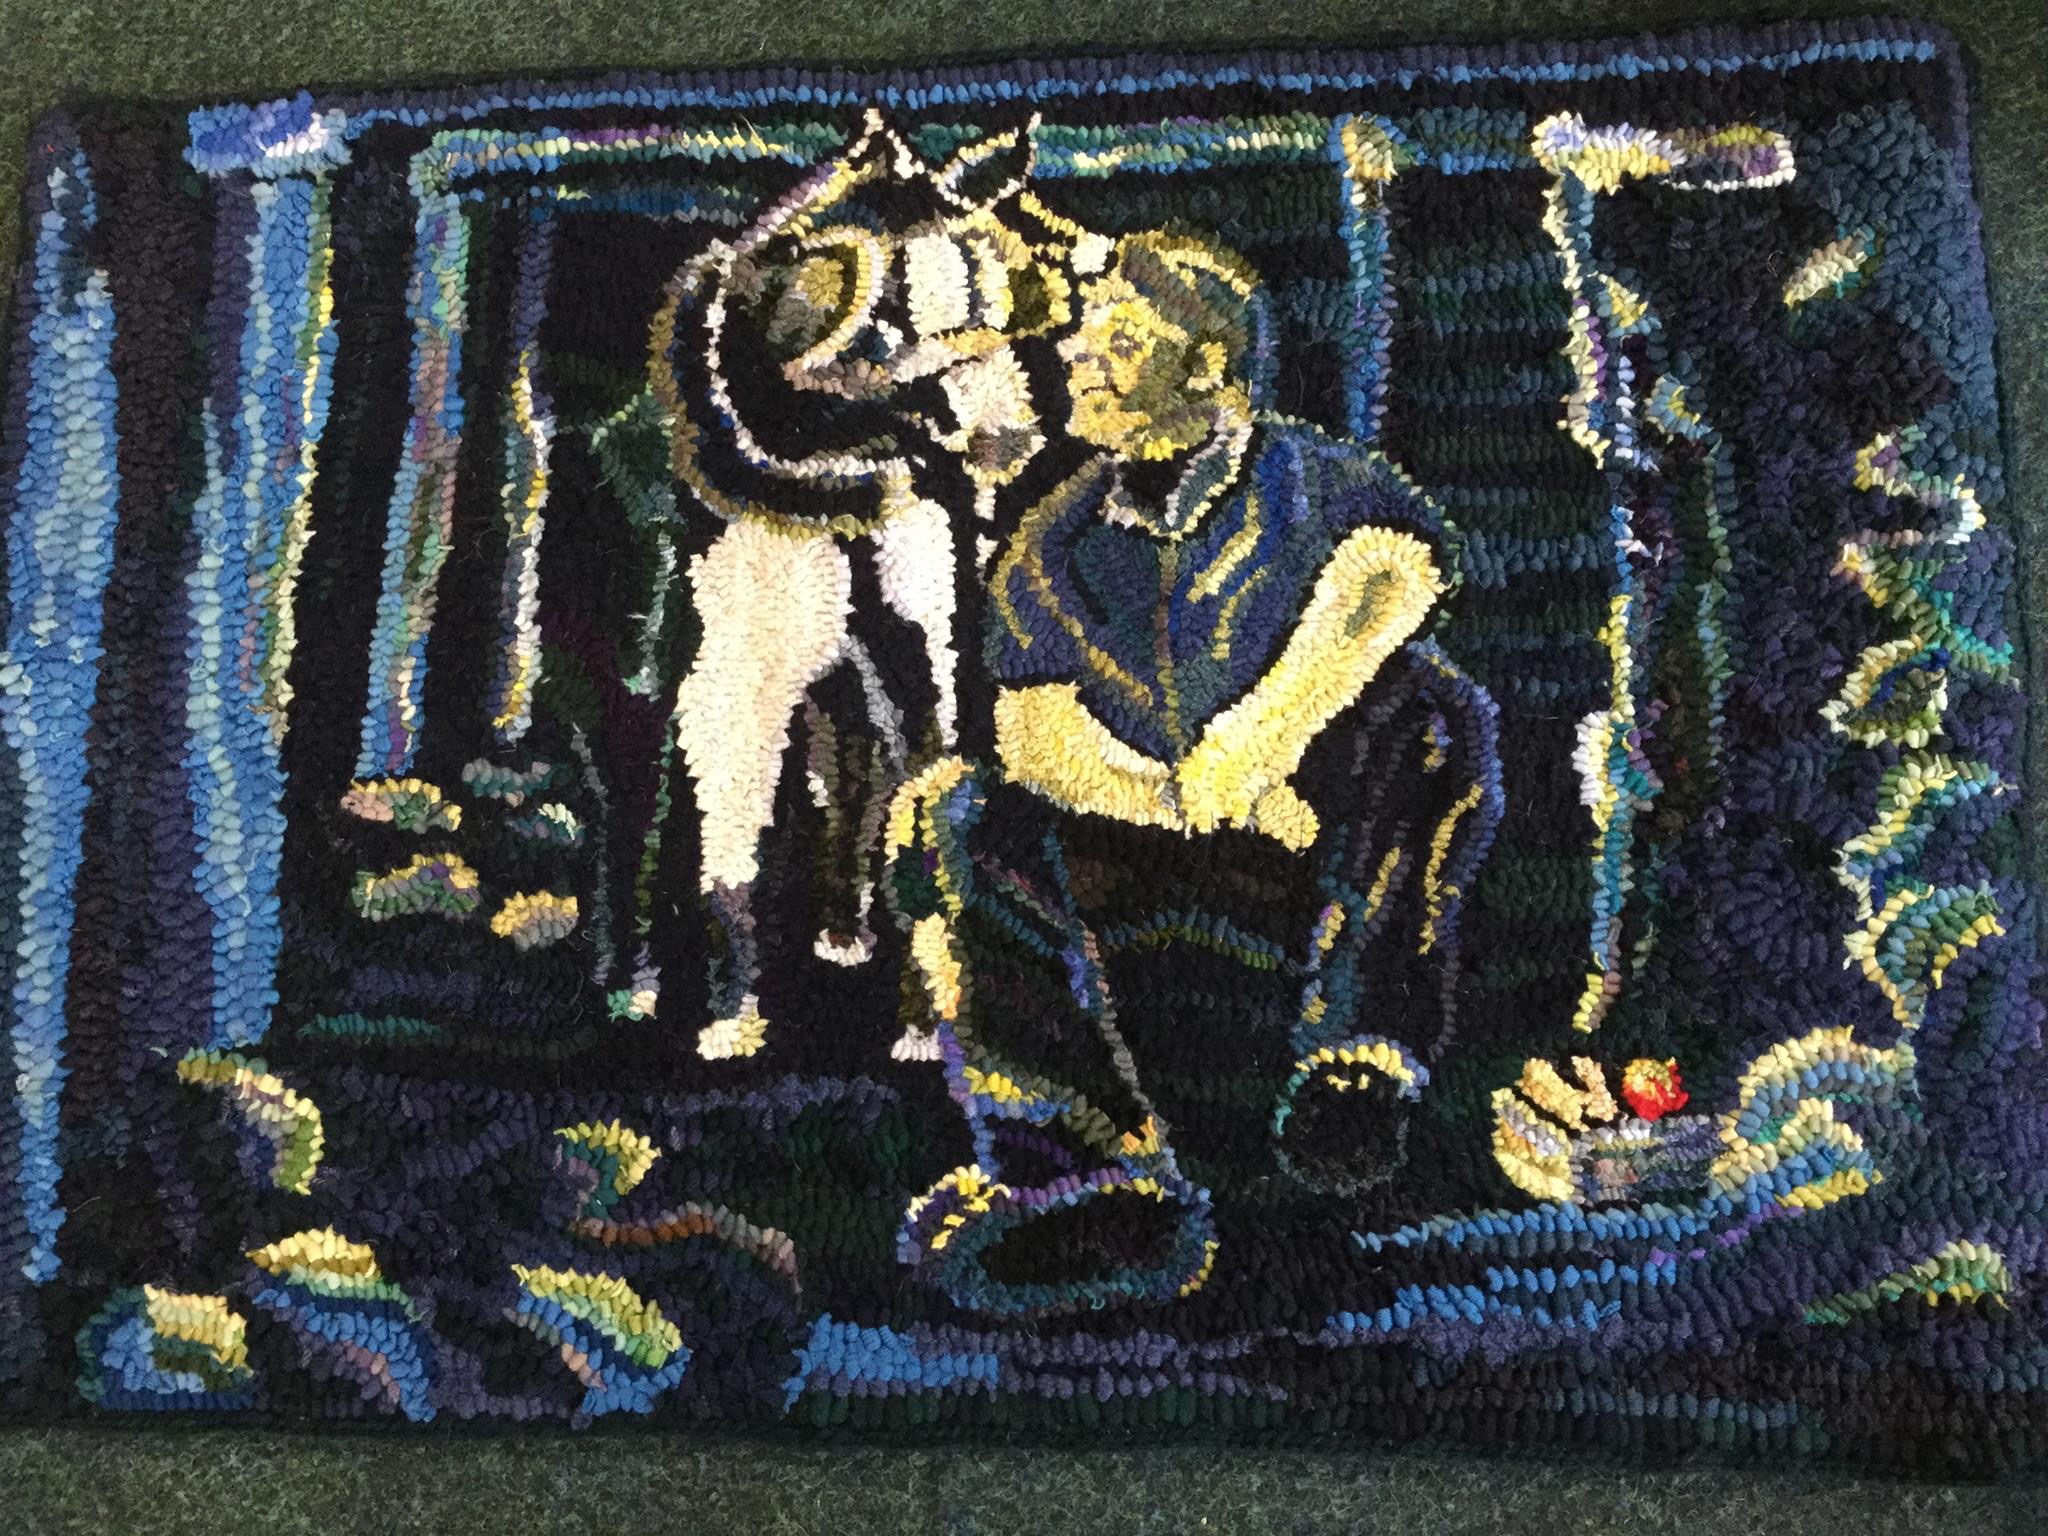 Rag Rug miner and dog picture by Heather Ritchie hooked rag rug wall hanging